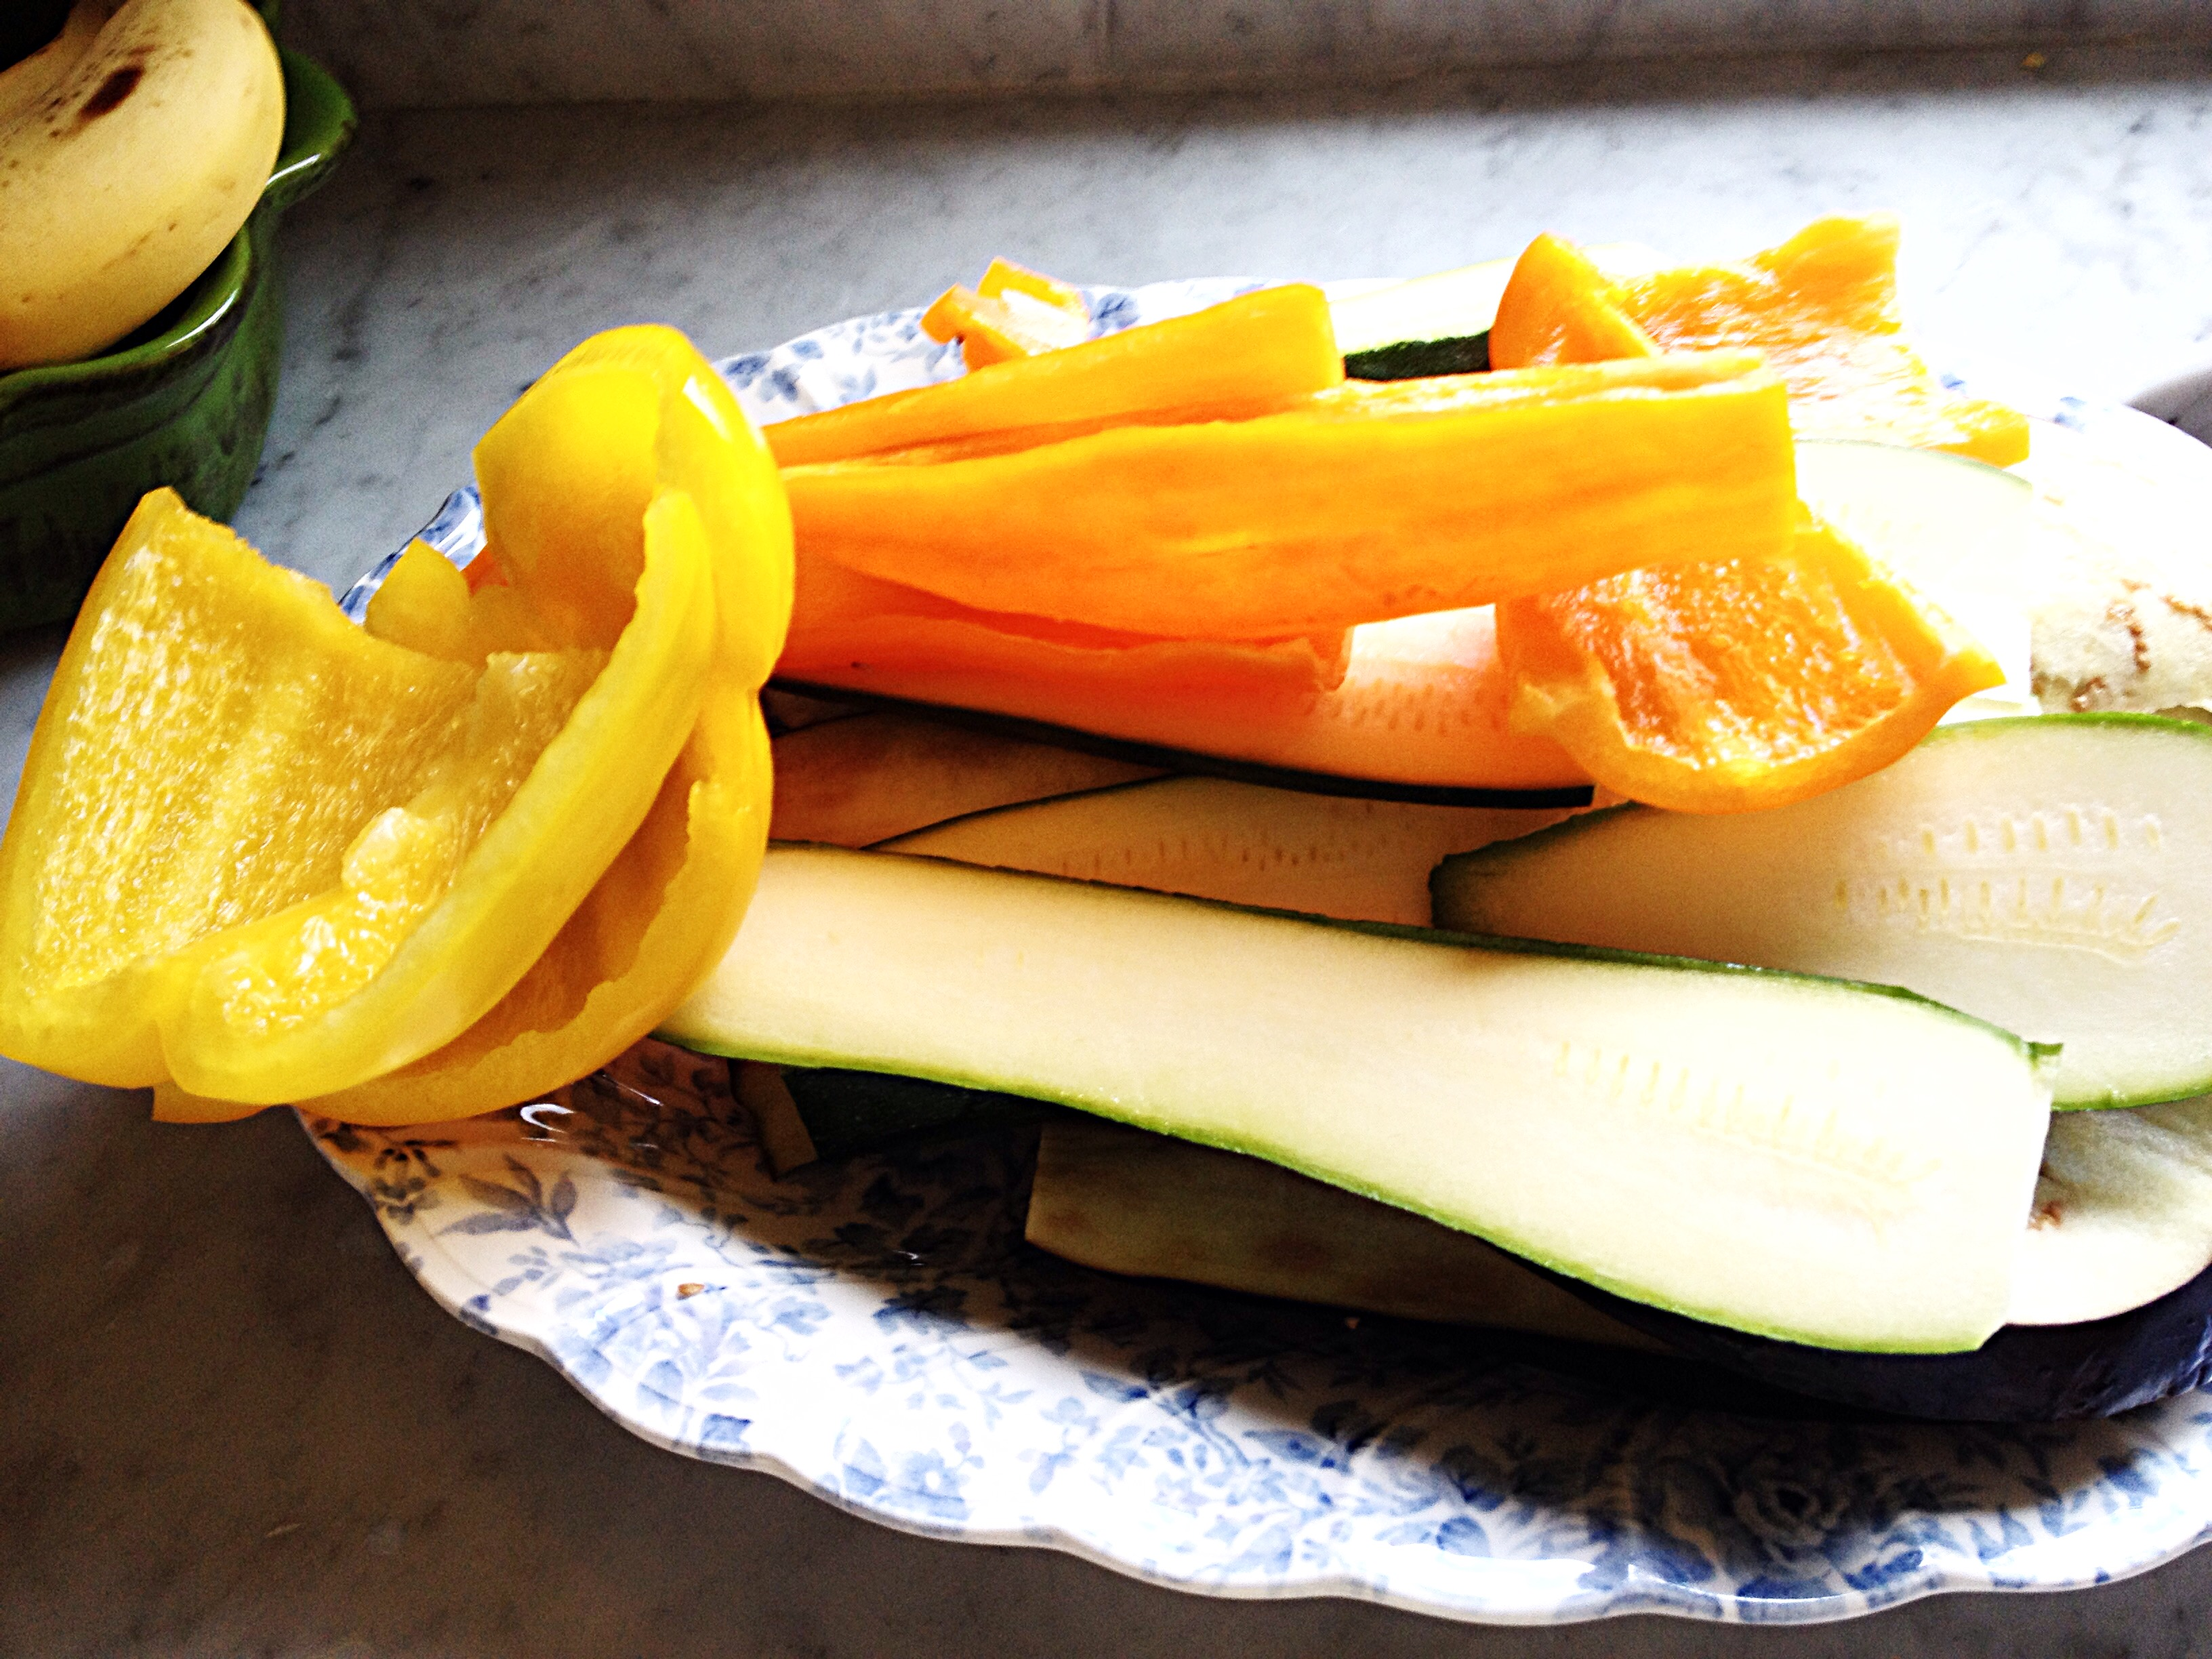 Veggies cut up for grilling